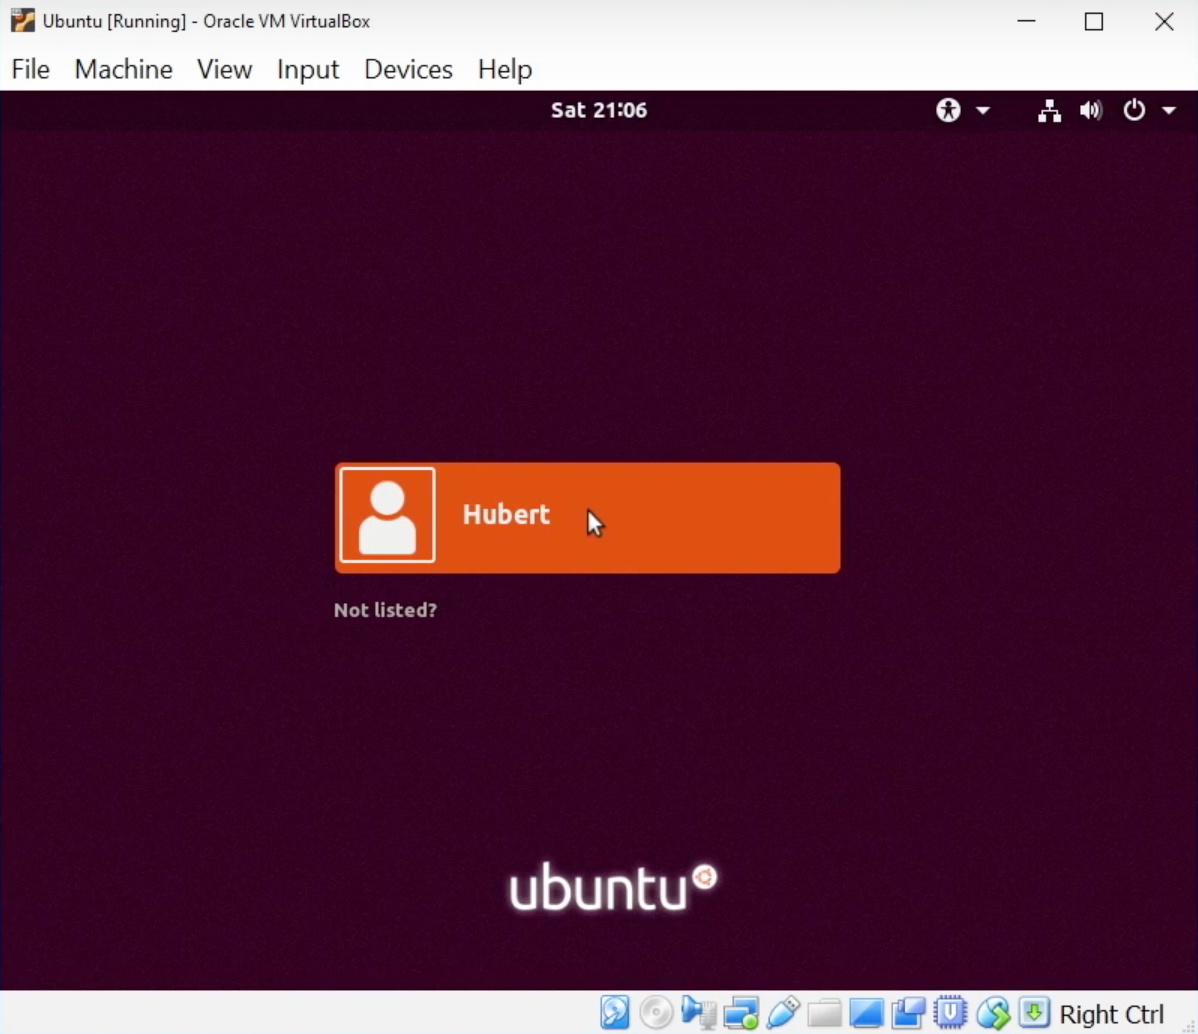 launch-ubuntu-name